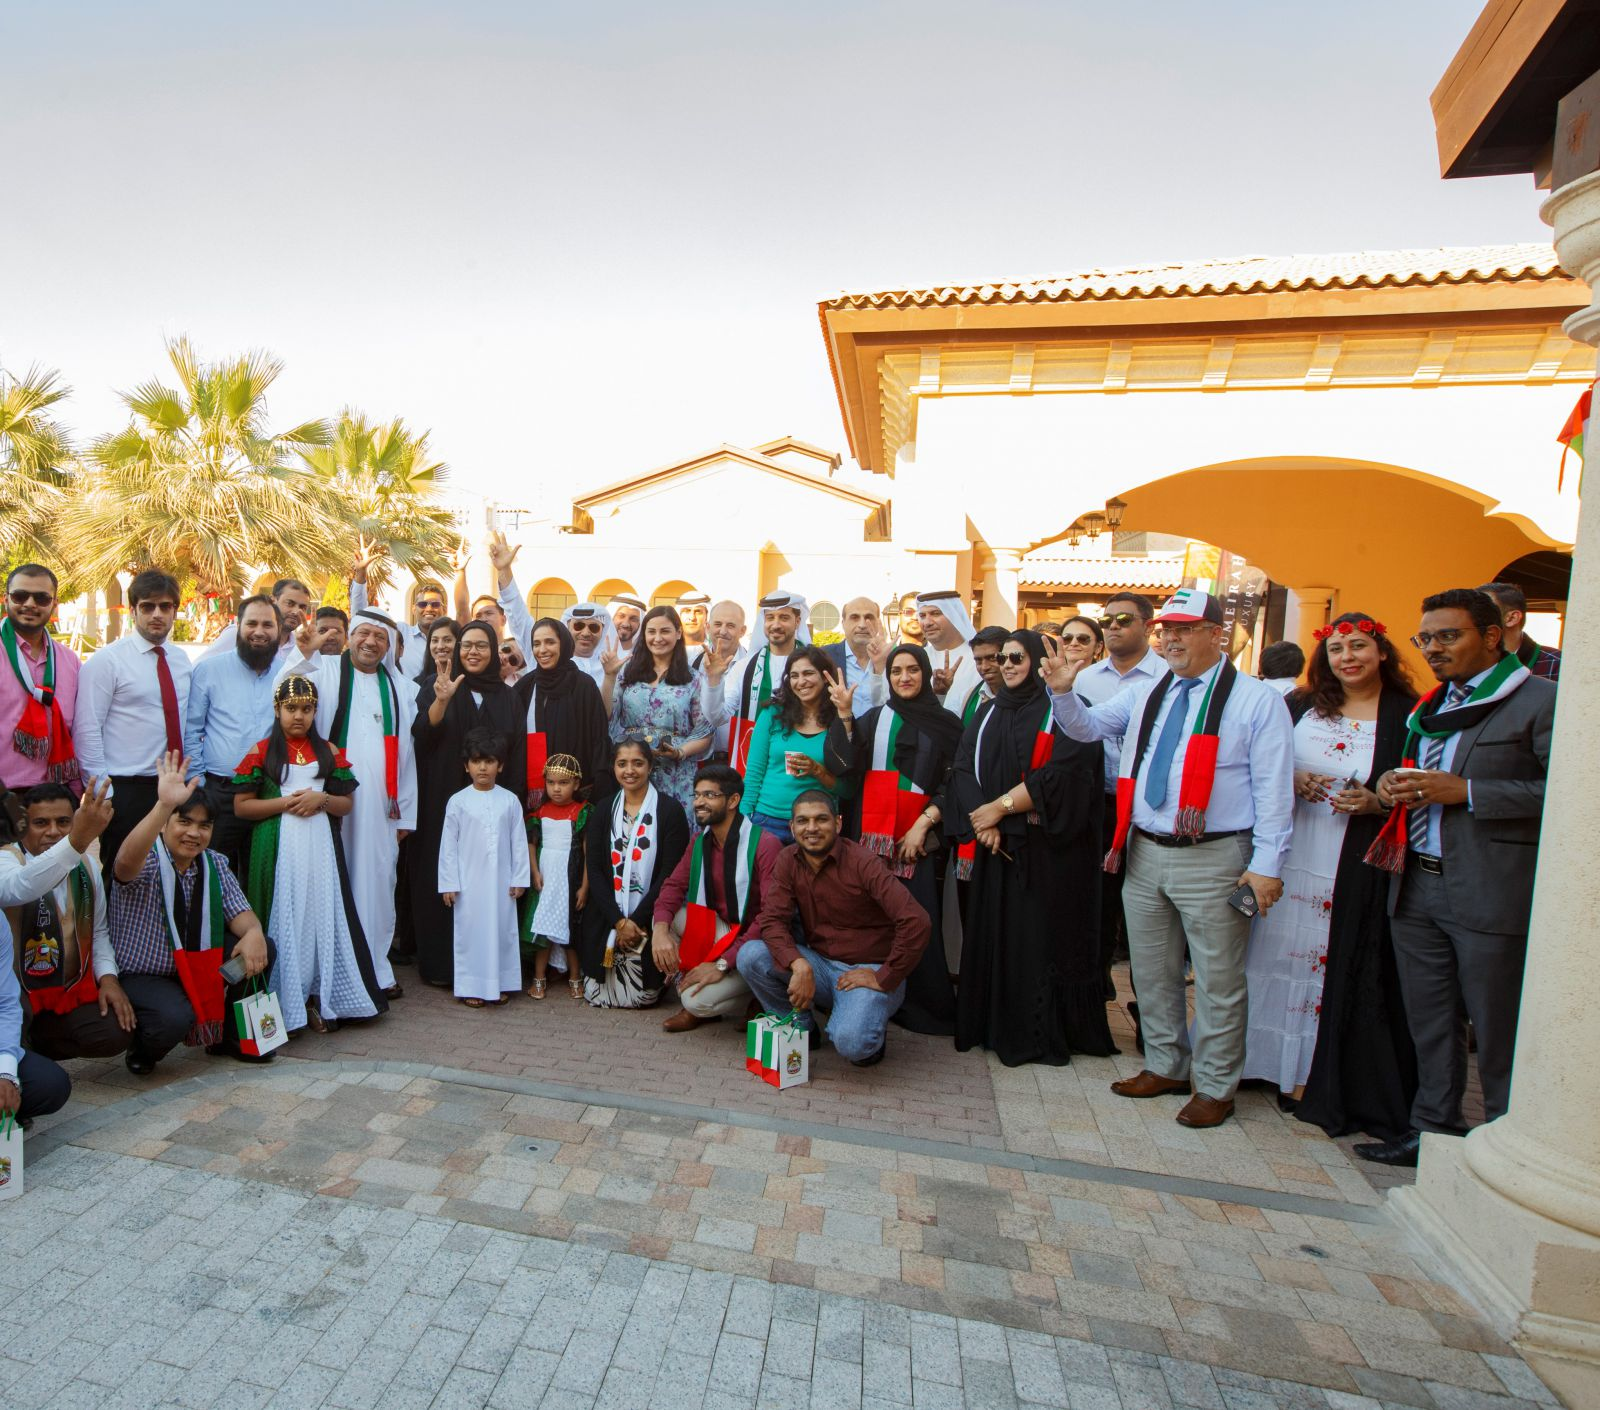 Jumeirah Golf Estates Celebrates 46th UAE National Day